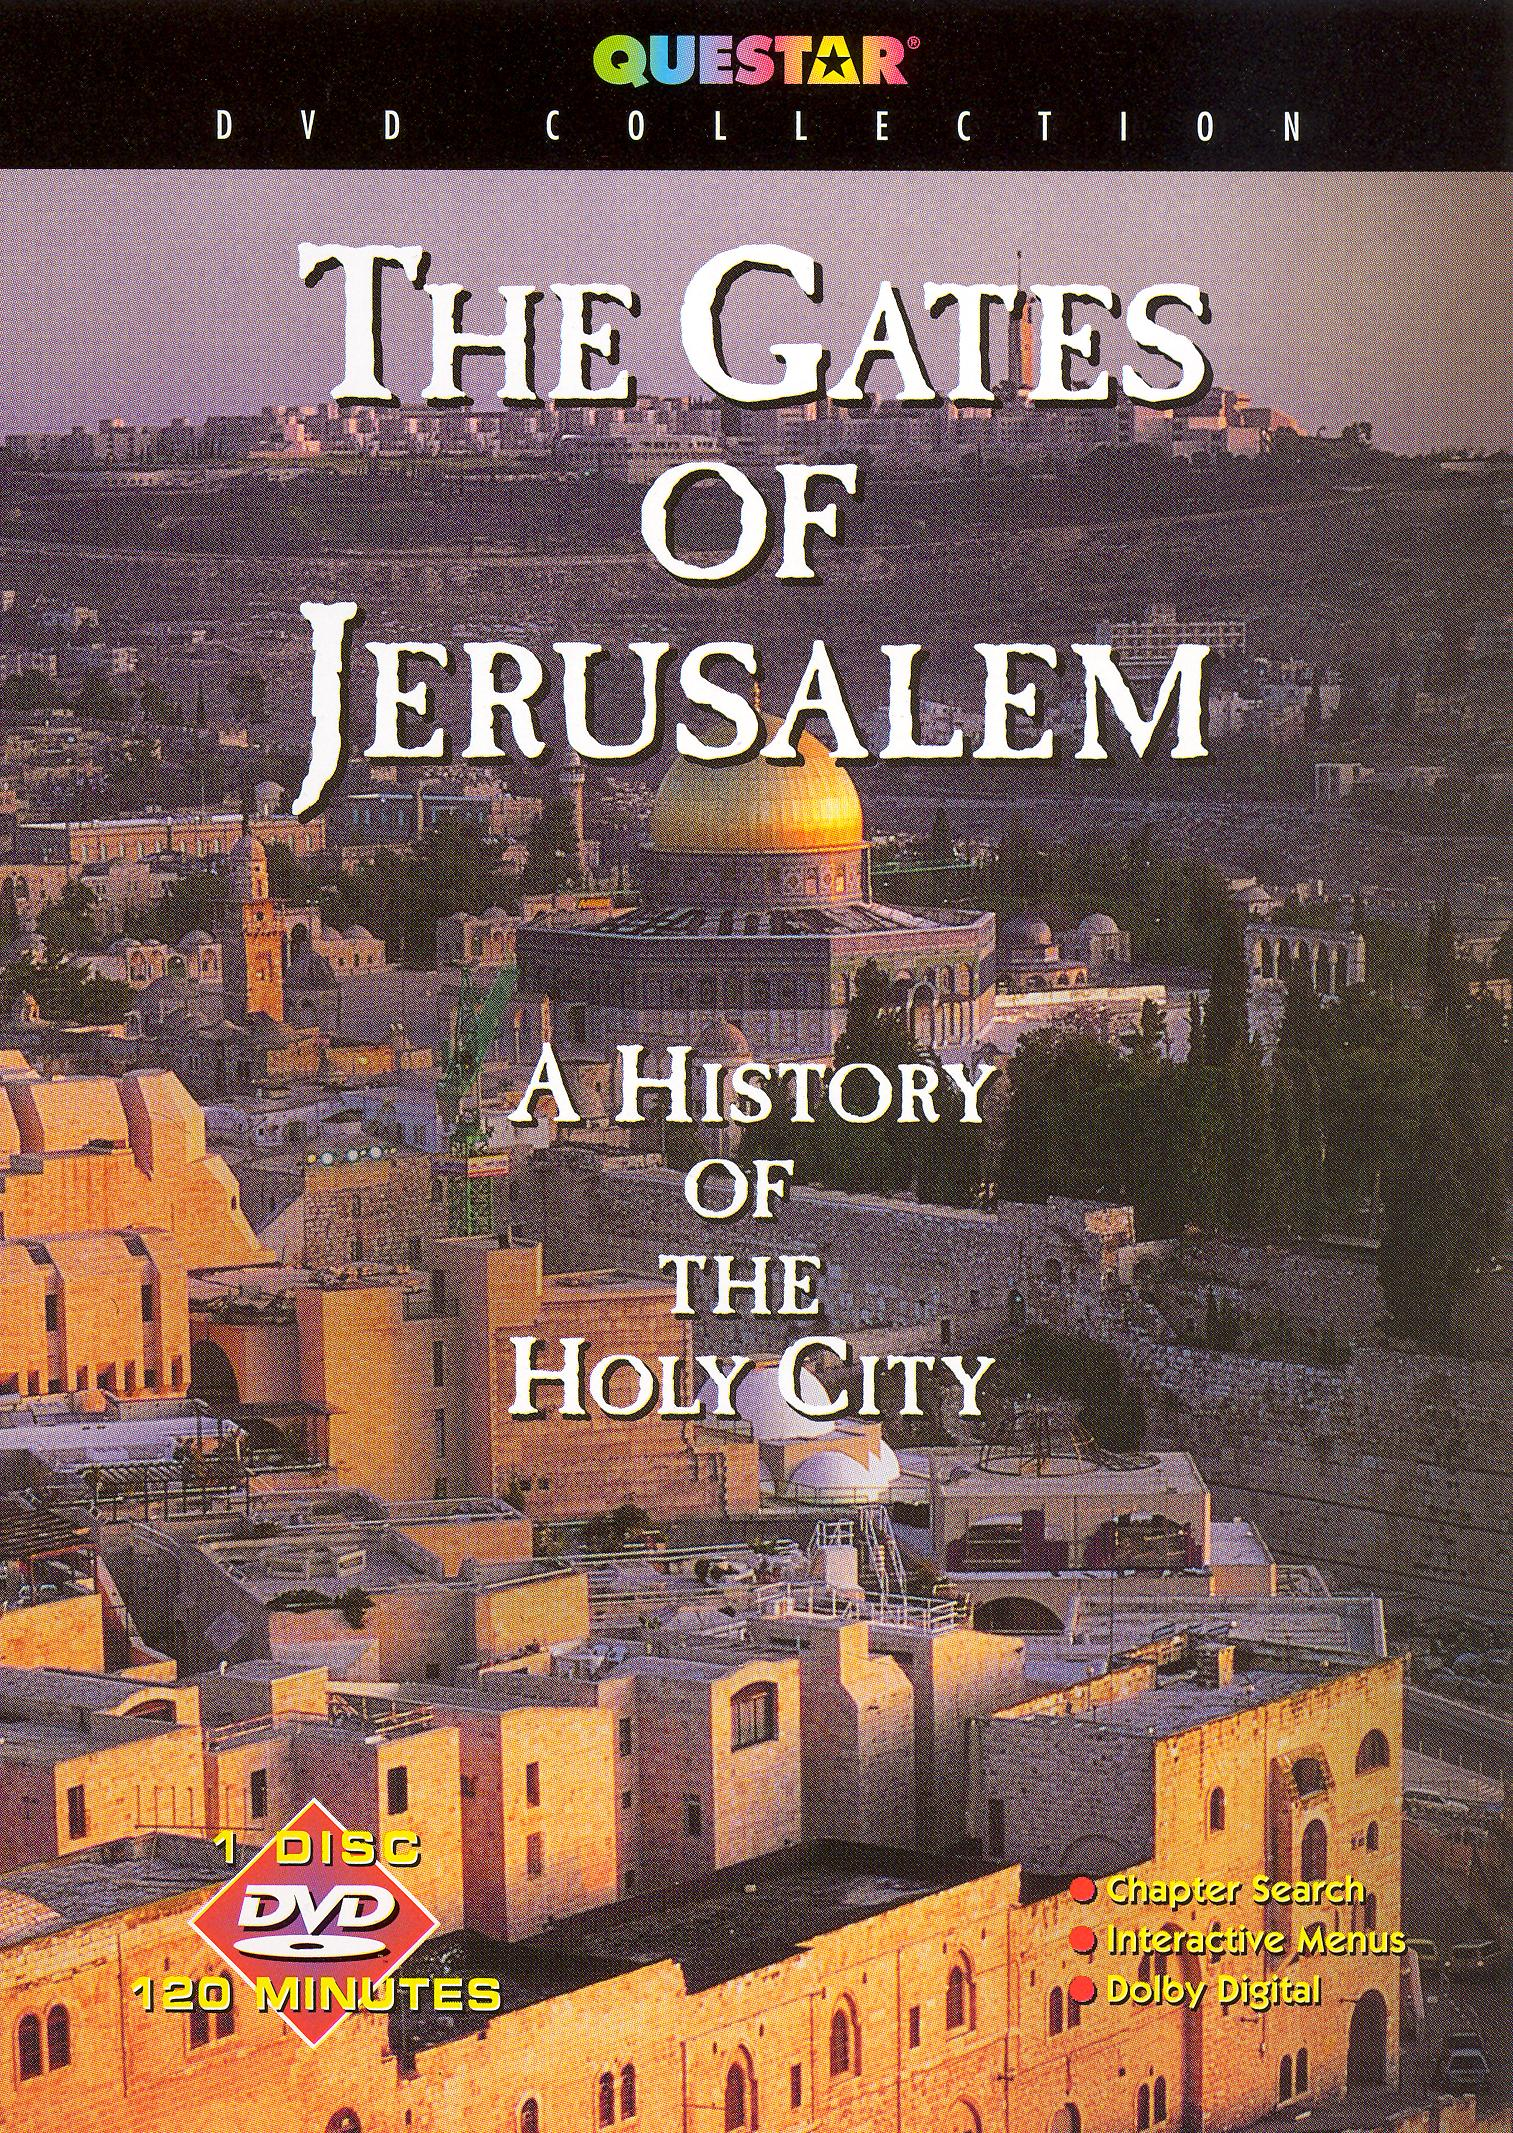 The Gates of Jerusalem: A History of the Holy City